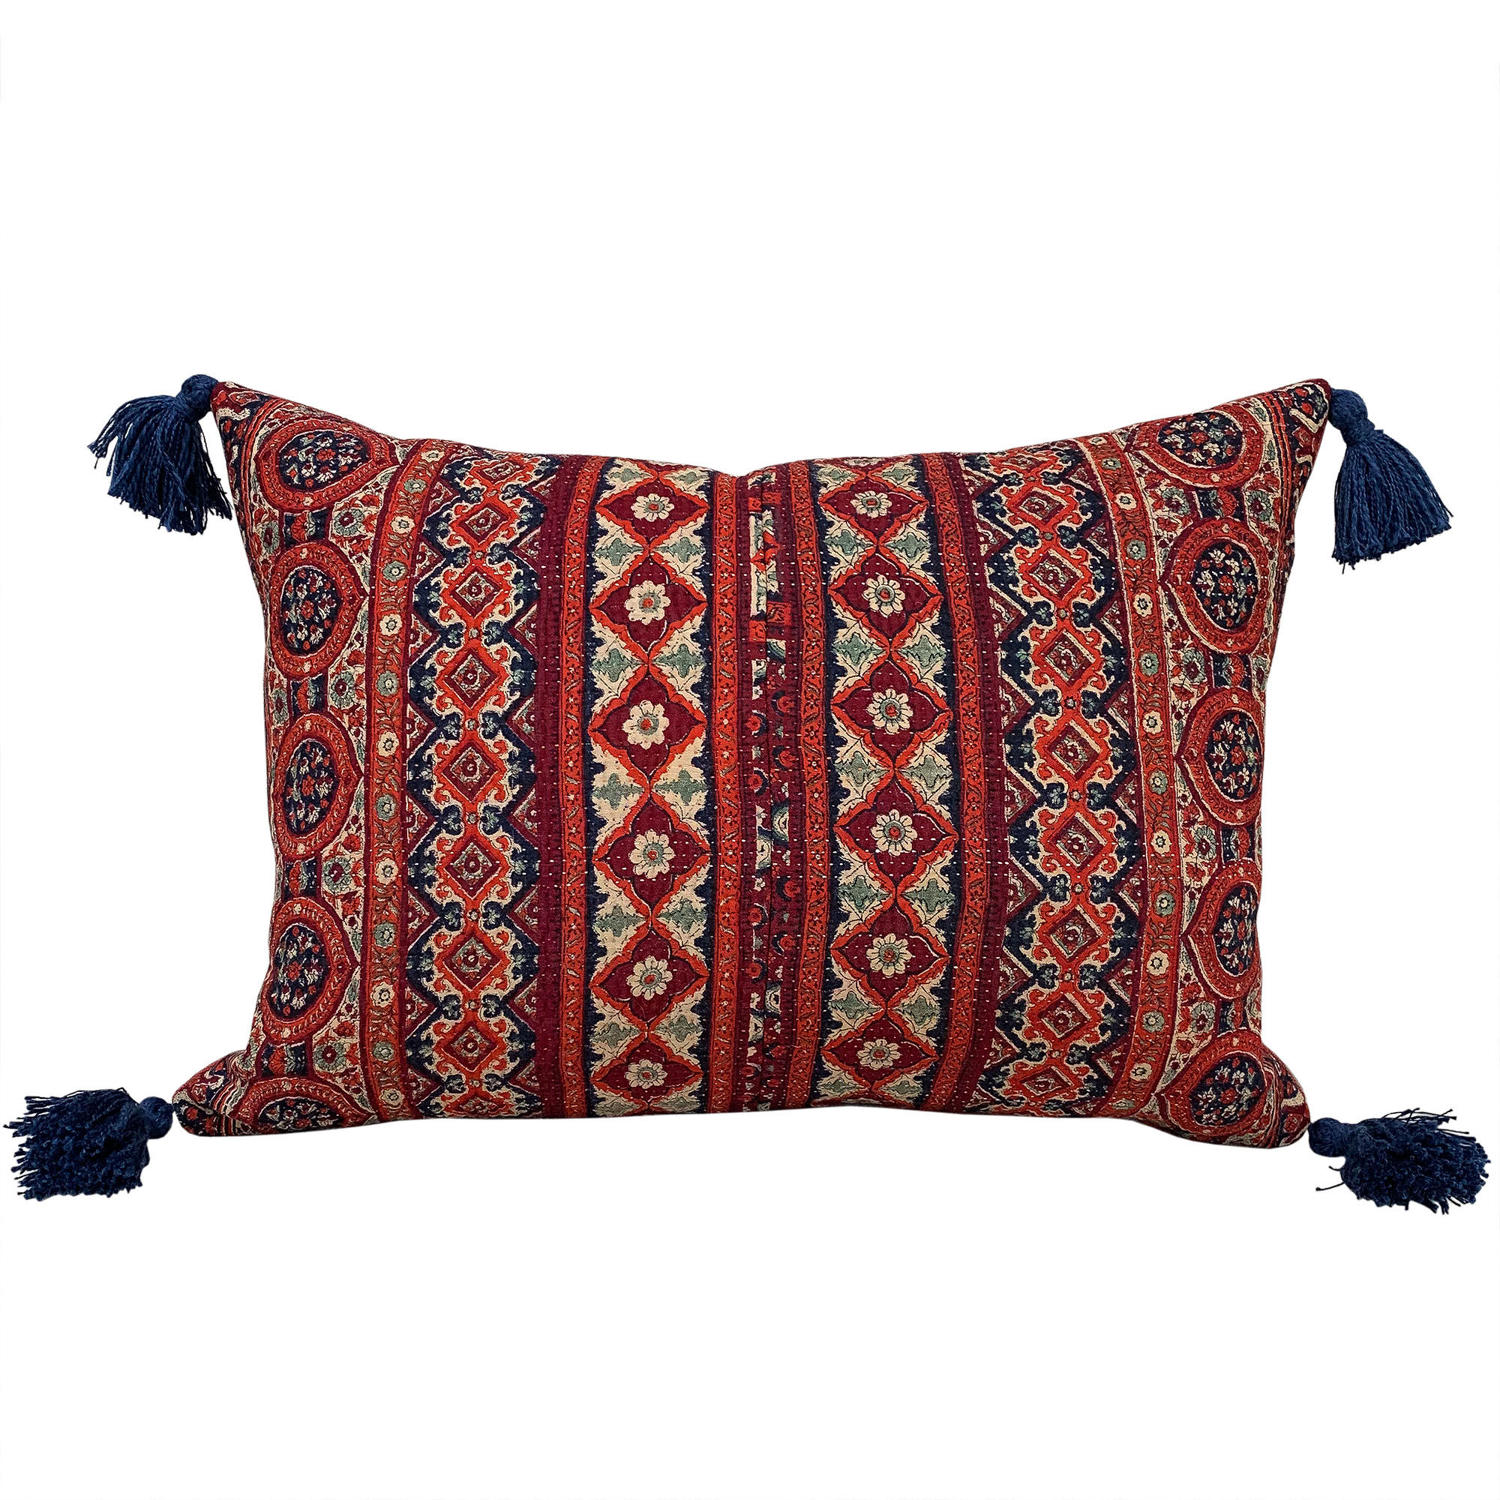 Sami Quilt Cushions with Blue Tassels